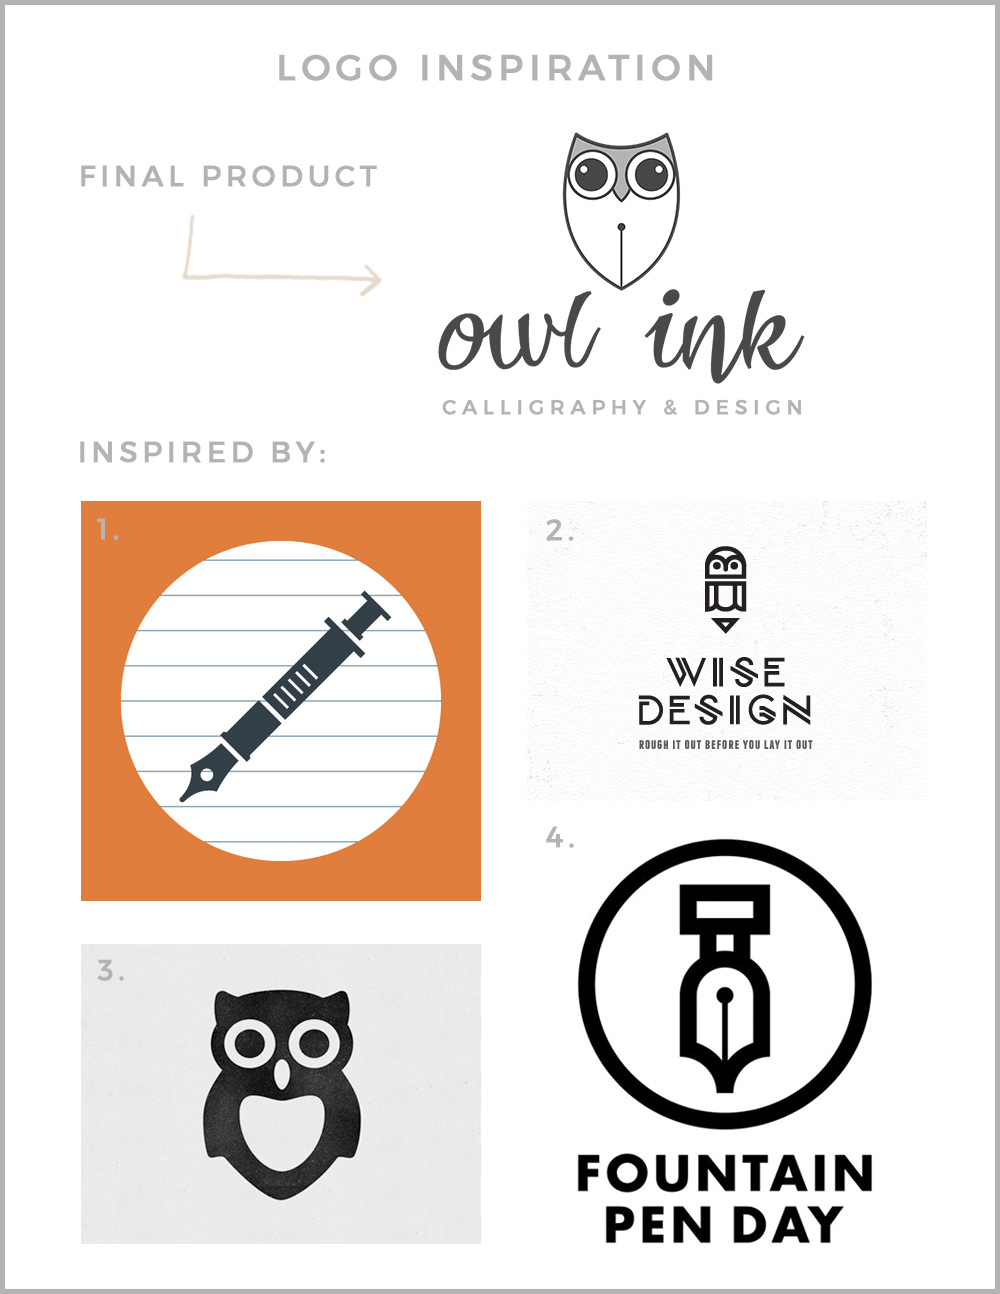 Owl Ink Logo Inspiration